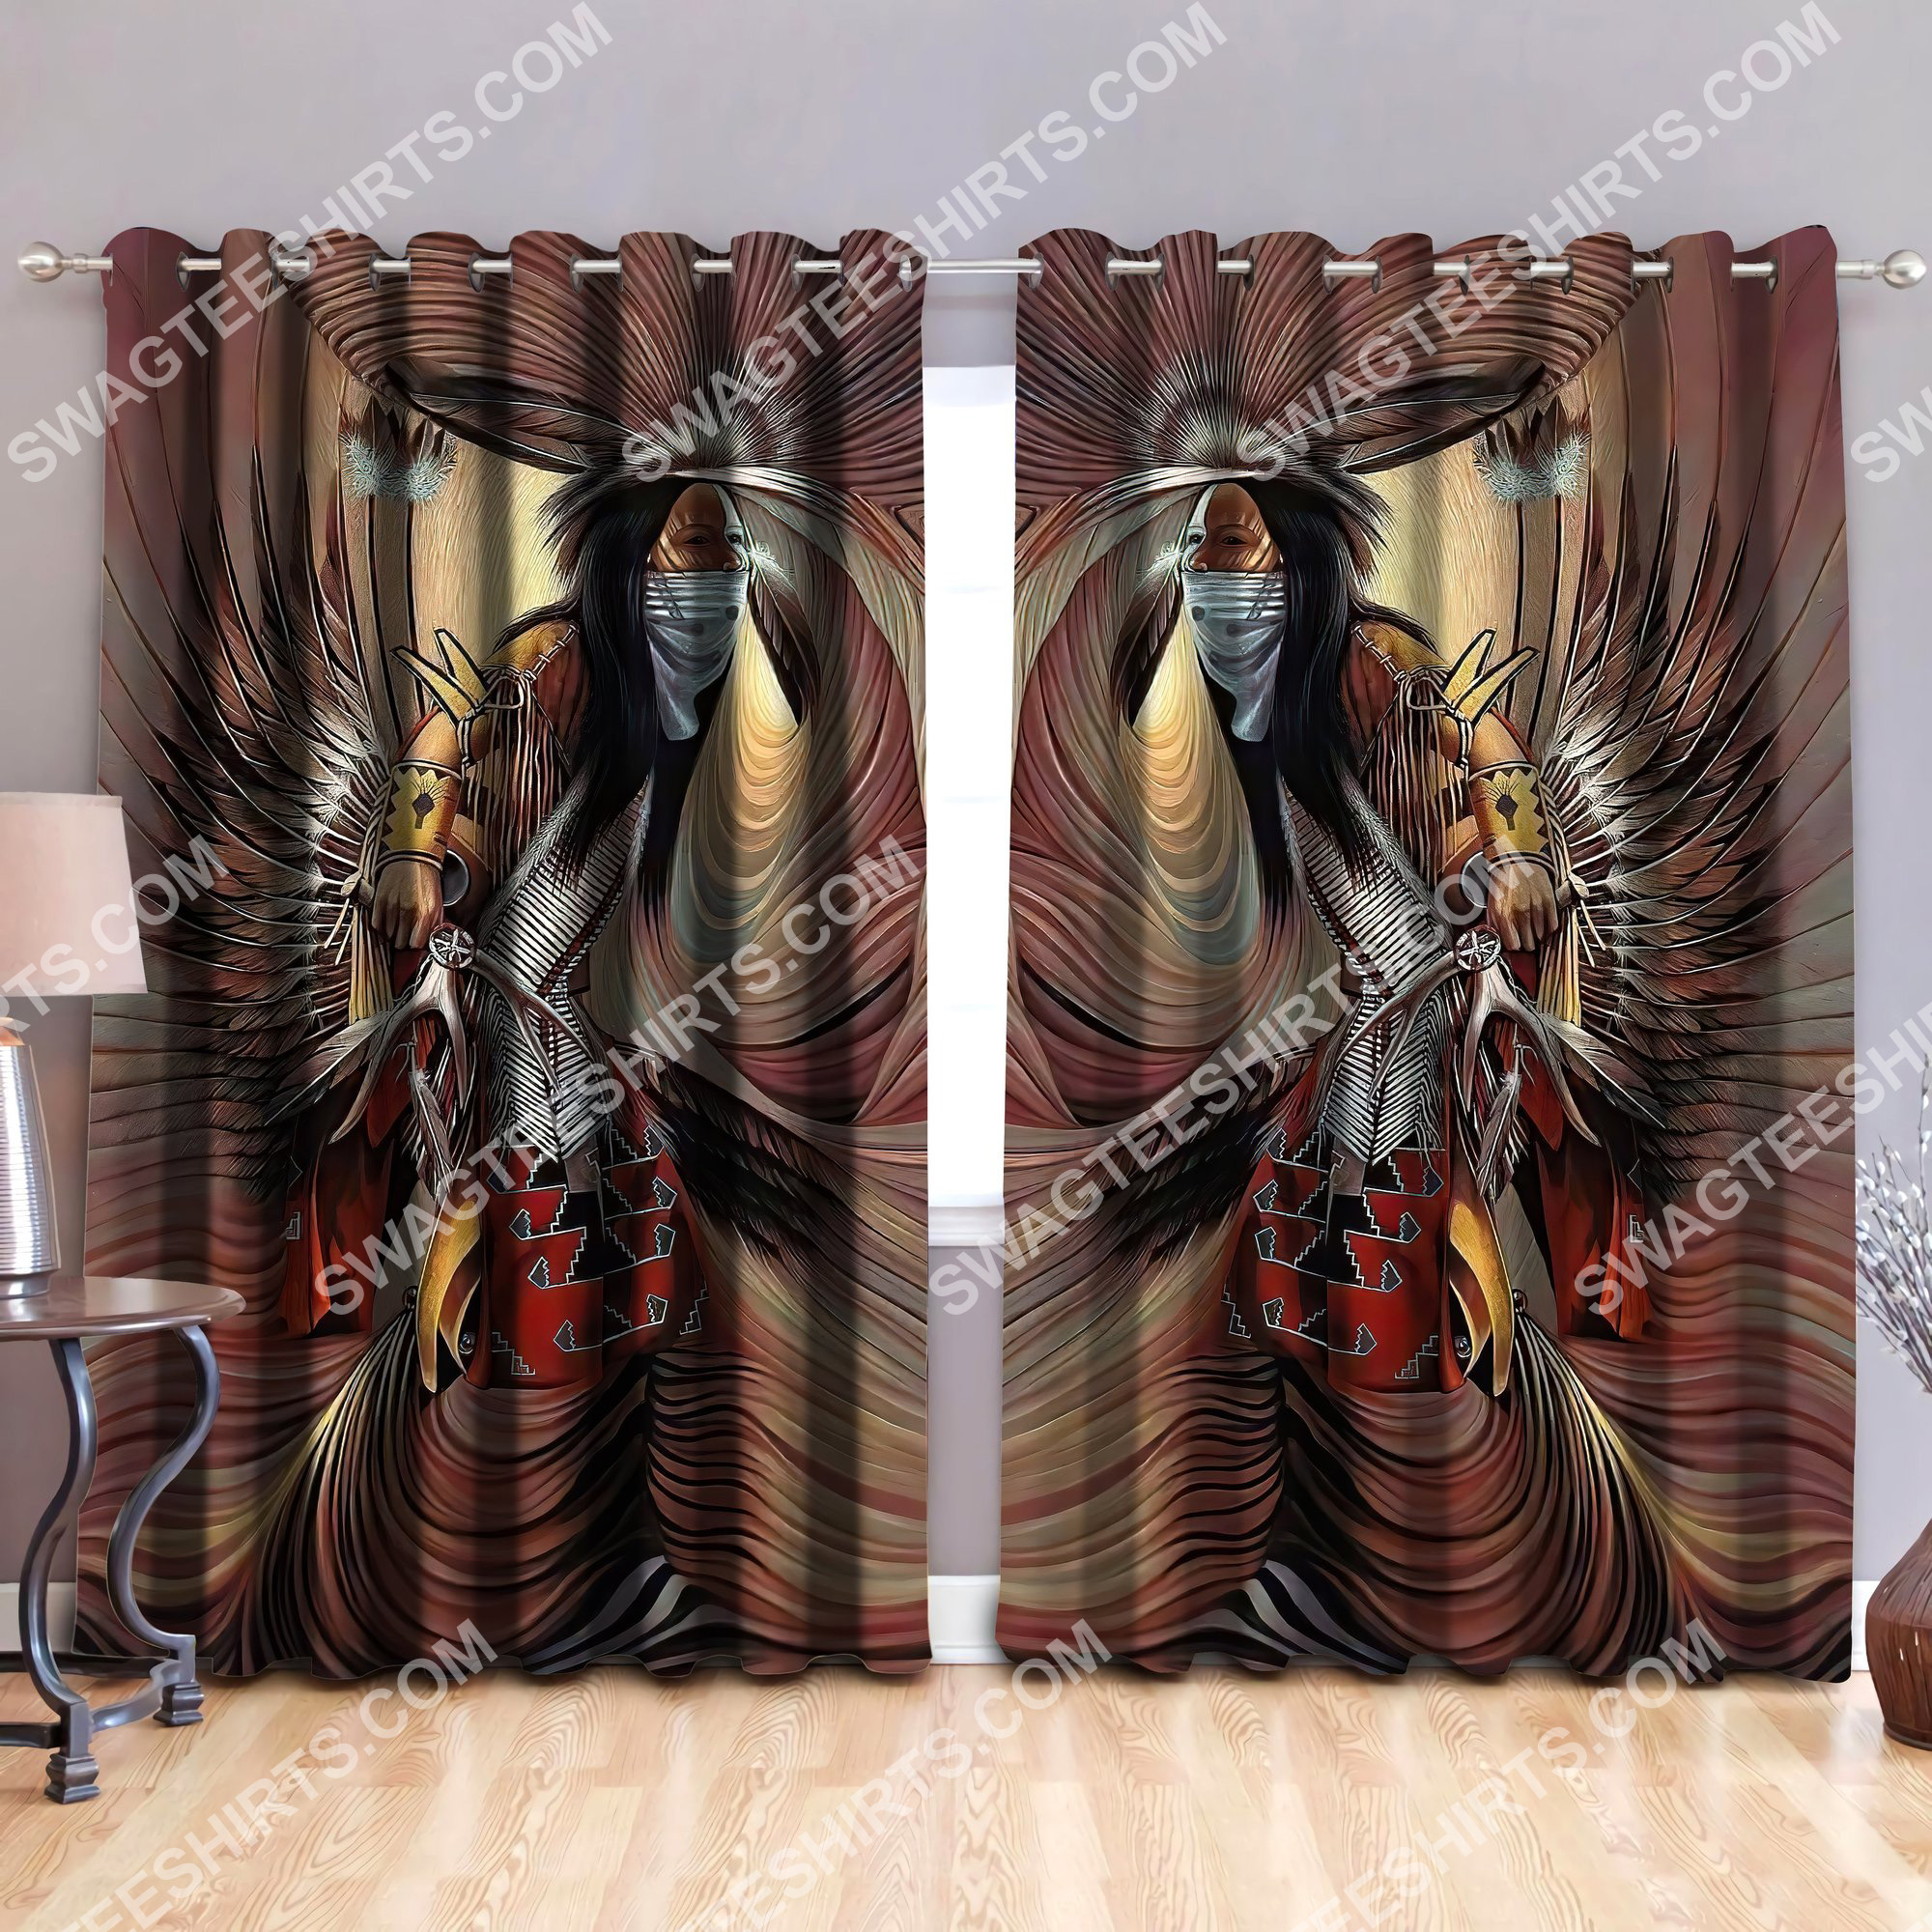 native american man all over printed window curtains 2(1) - Copy